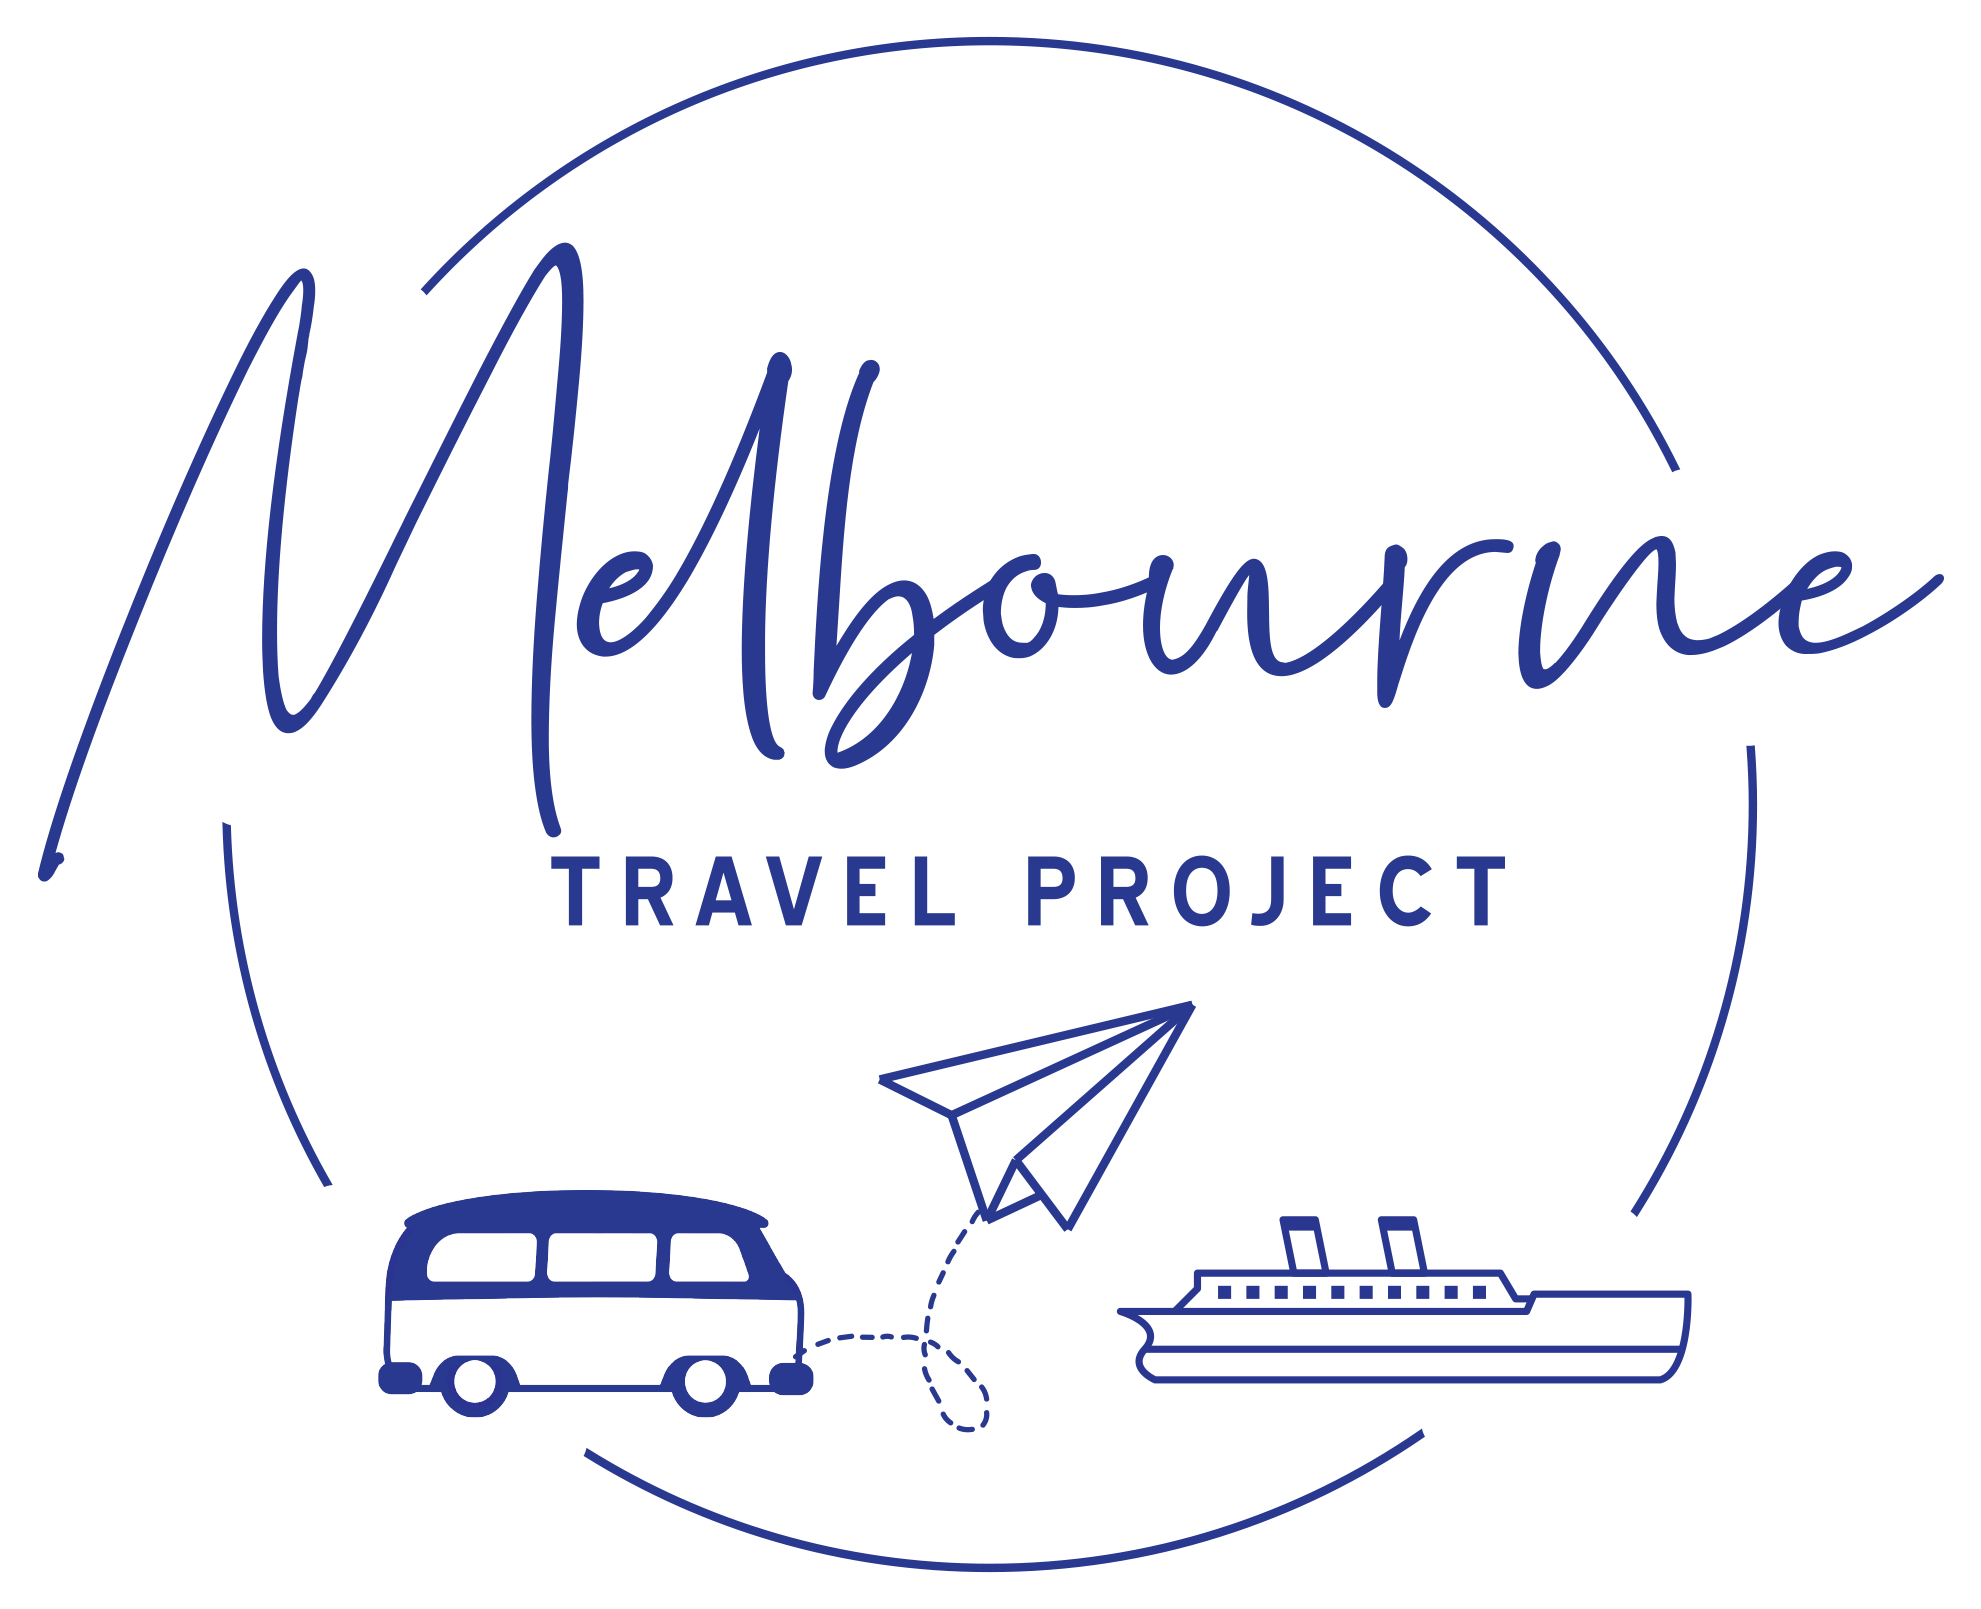 Melbourne Travel Project Logo